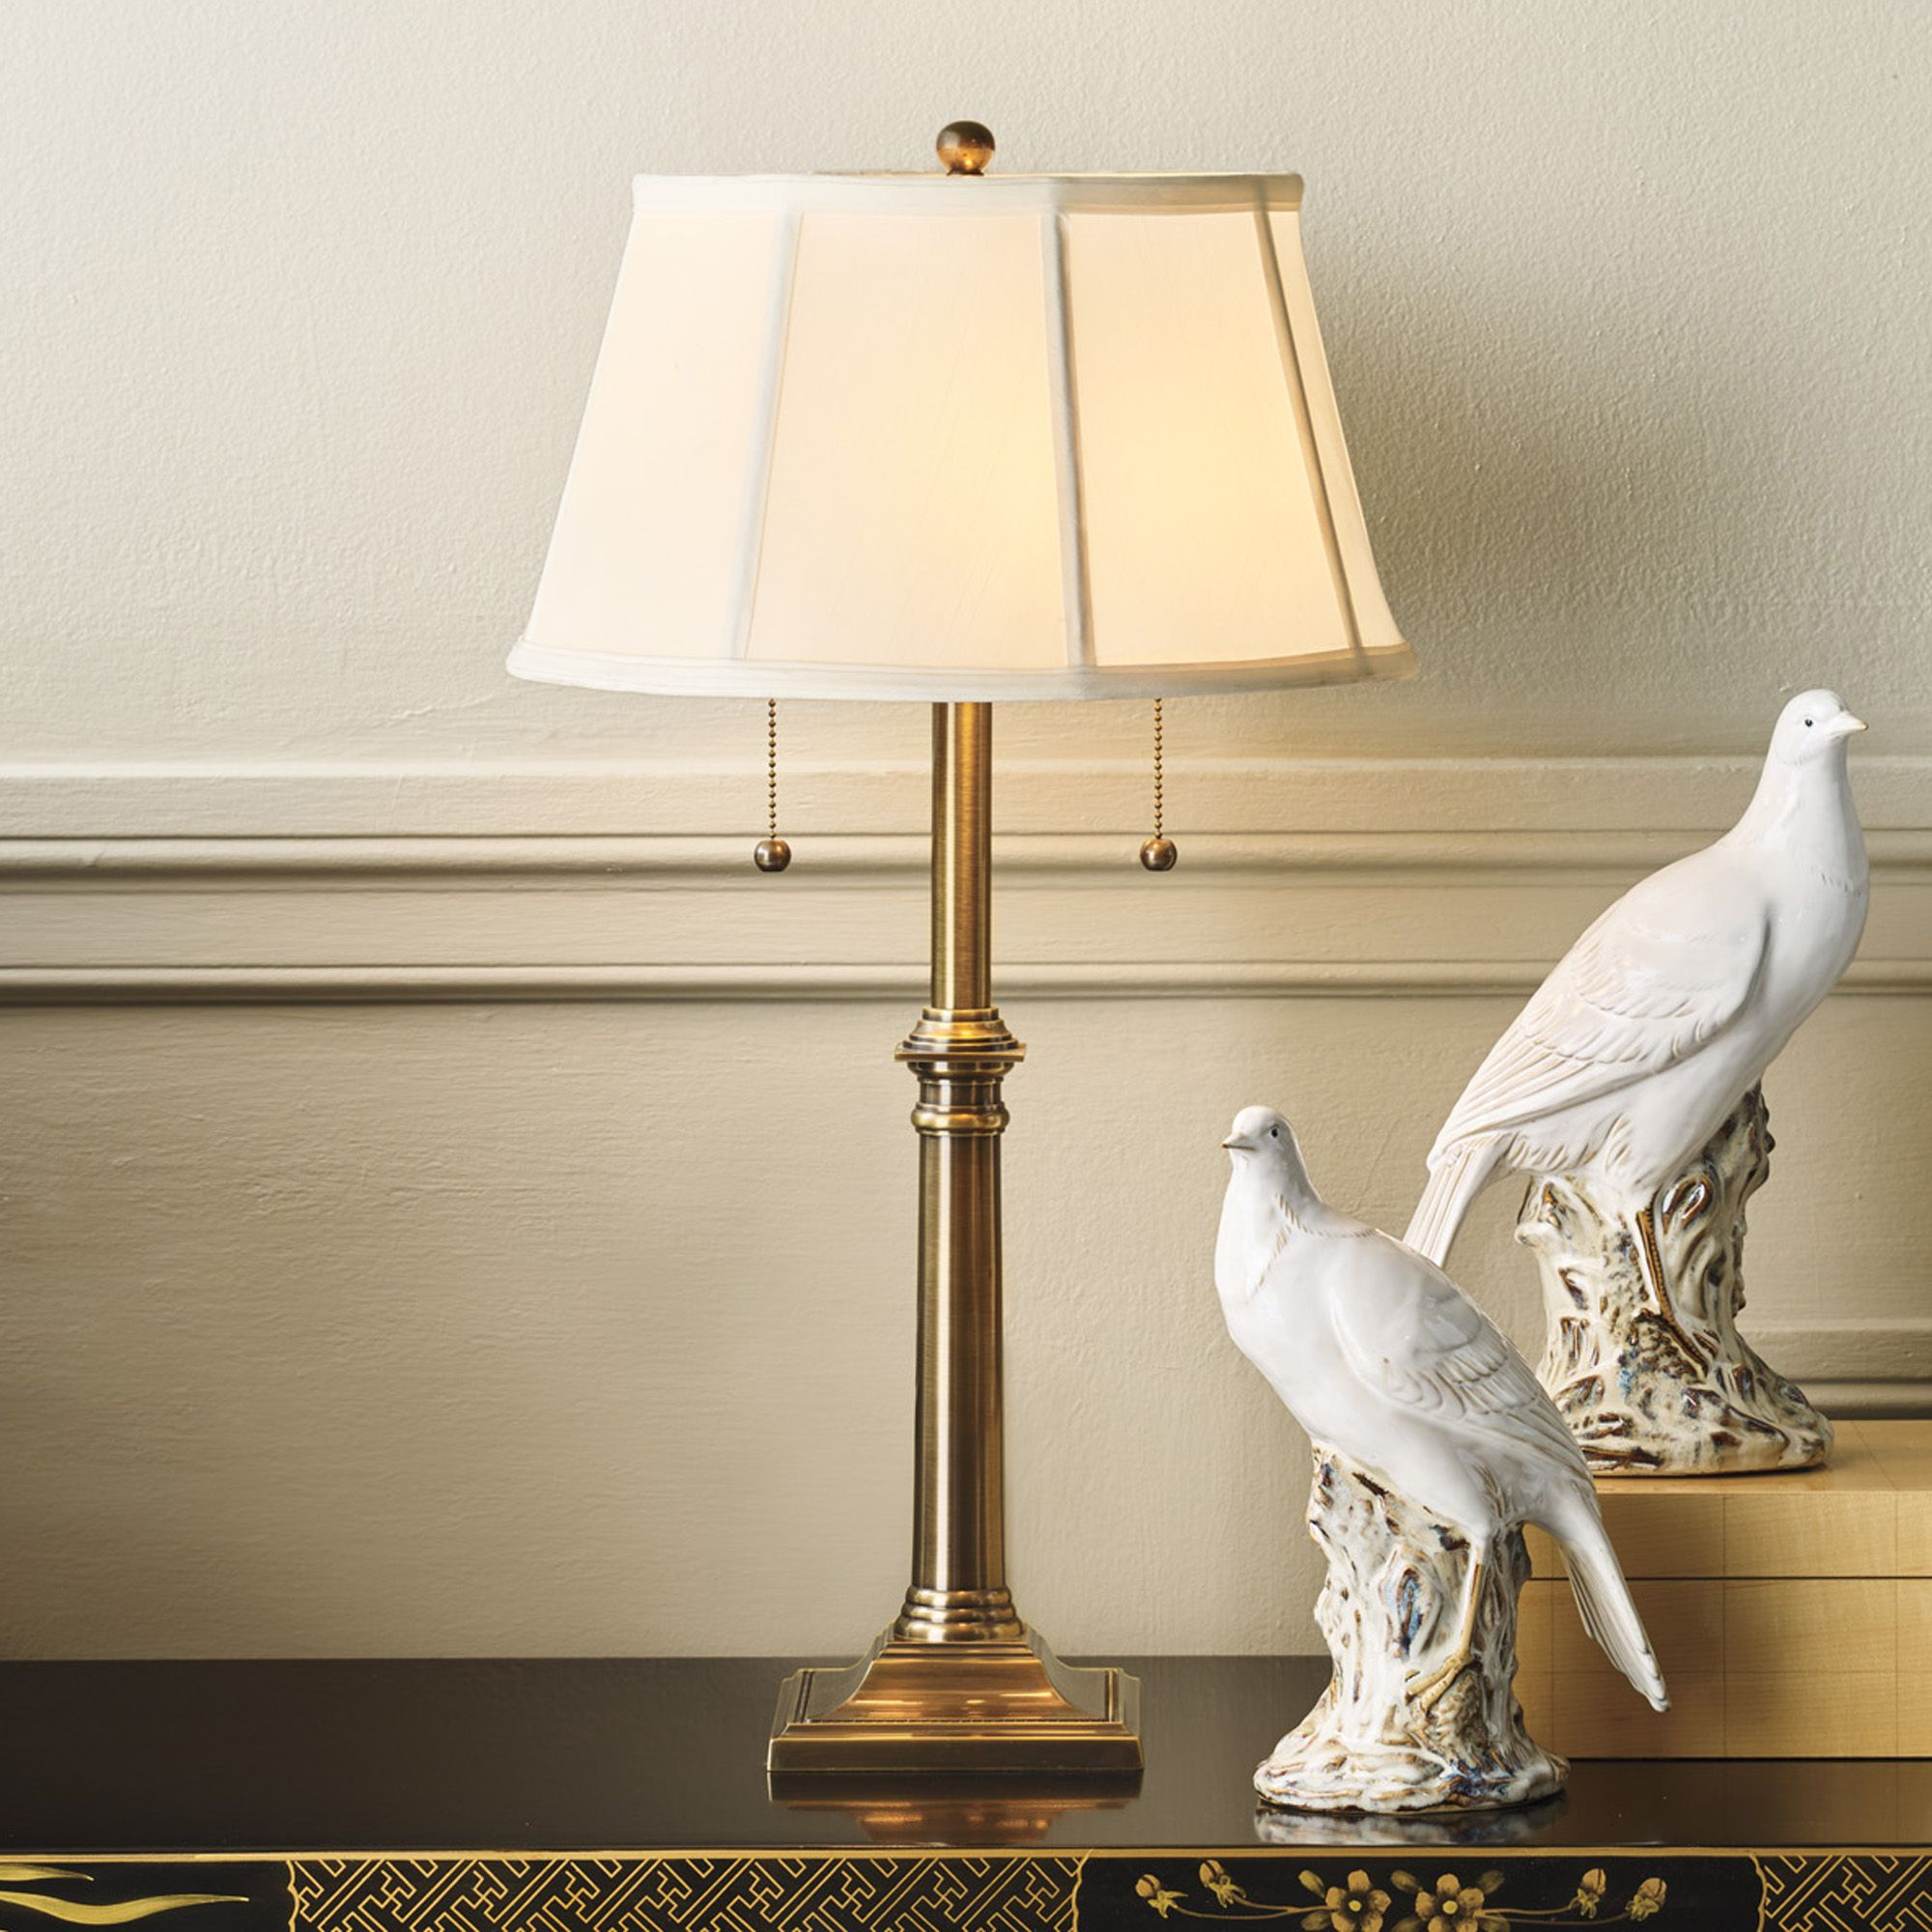 Lamps Online Buy Brass Hanover Table Lamp Online At Gump S Lamps And